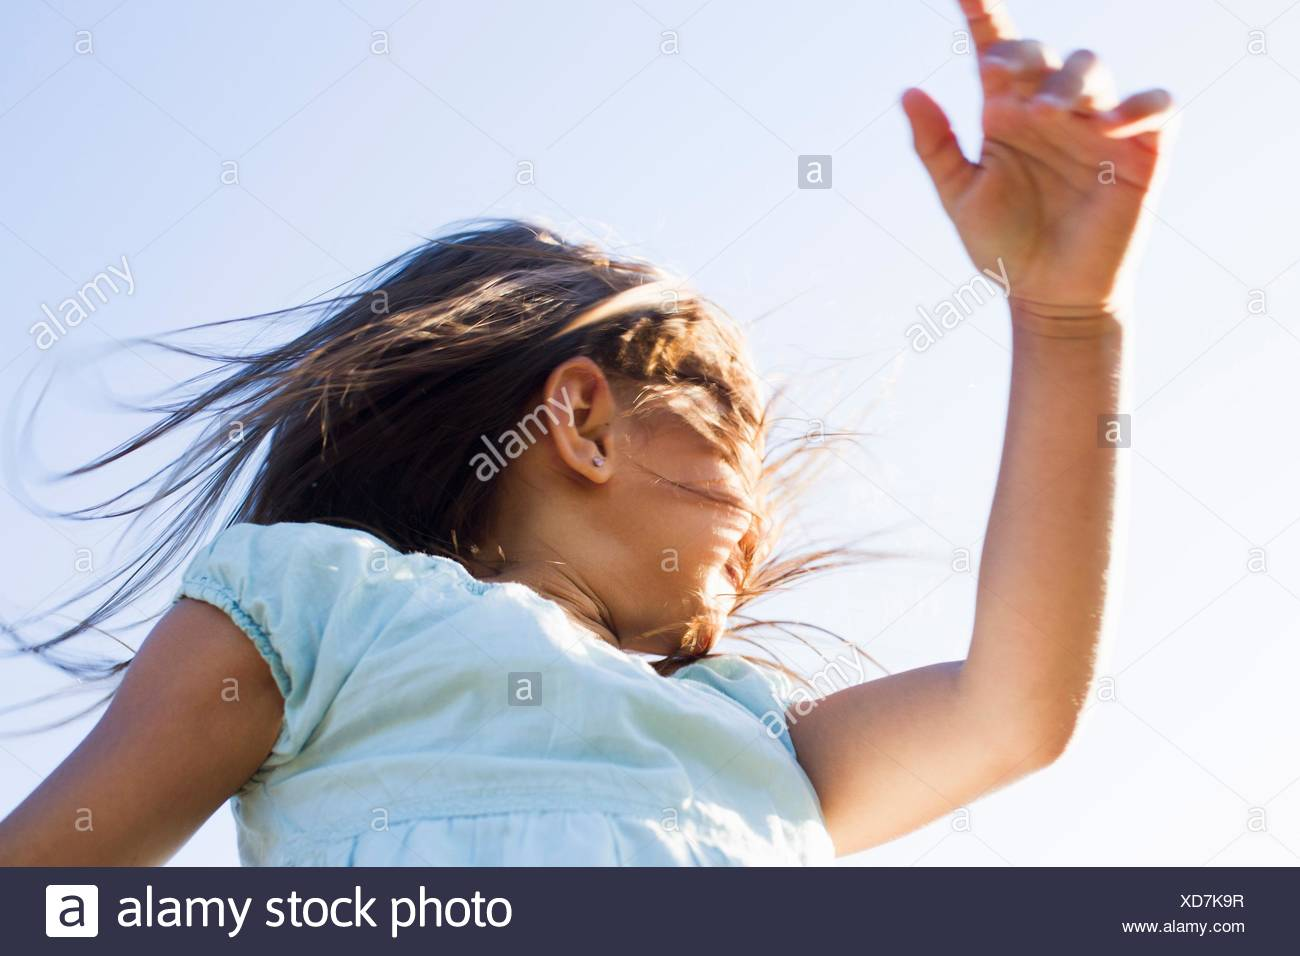 Low angle view of girl spinning around against blue sky - Stock Image